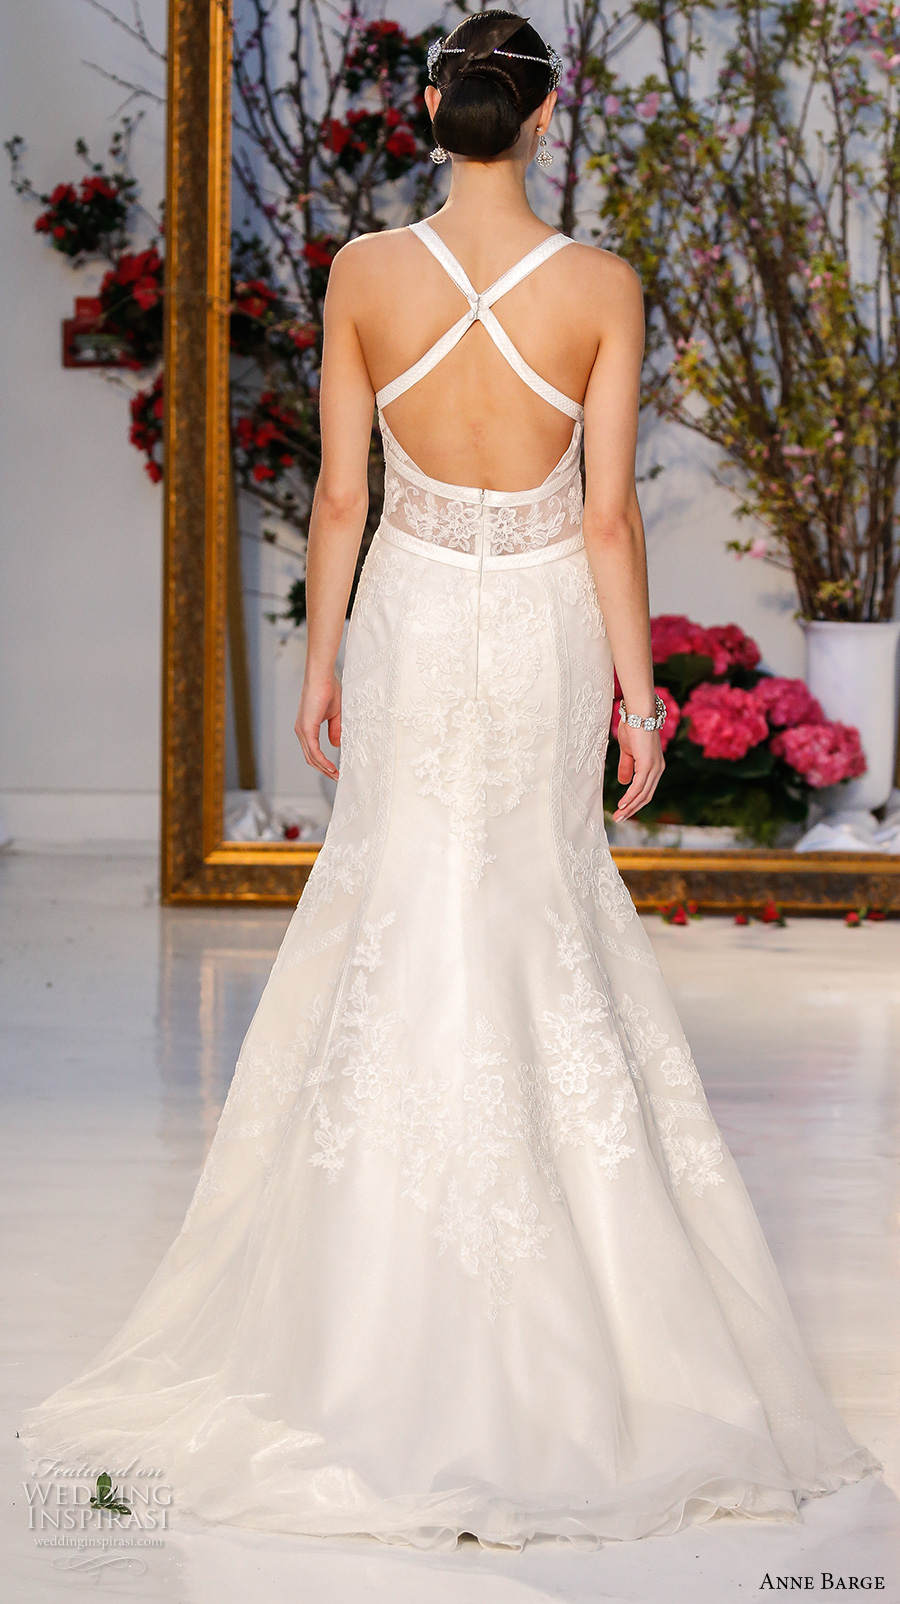 anne barge spring 2017 bridal sleevless strap plunging v neck lace bodice sexy fit to flare wedding dress low back sweep train (002) bv